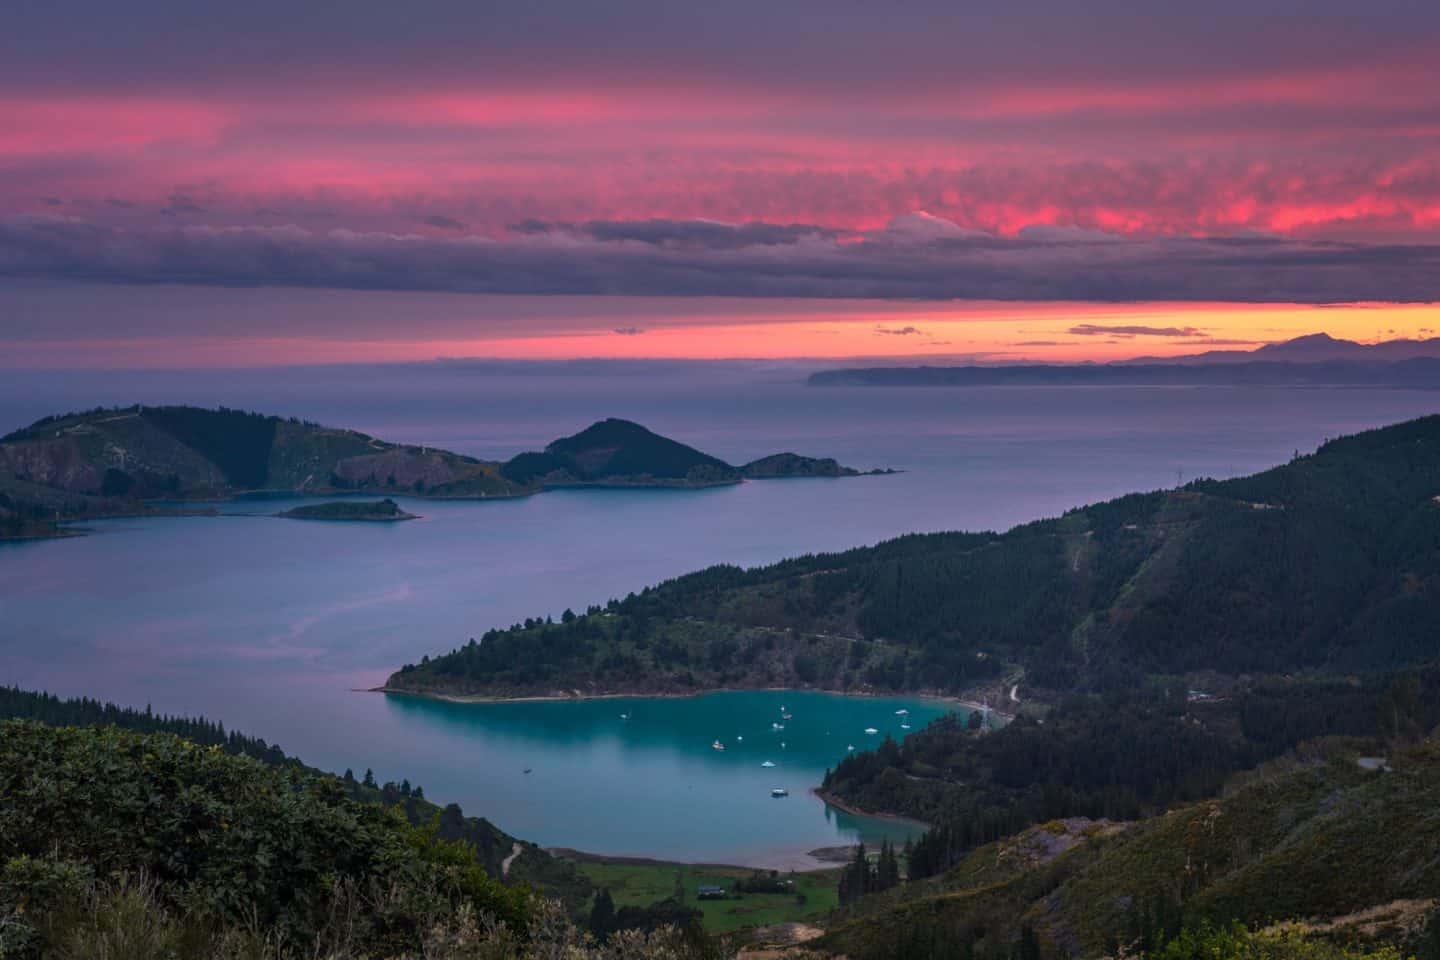 Sunset from Whatamango Bay is another NZ hidden gem known by very few landscape photographers.